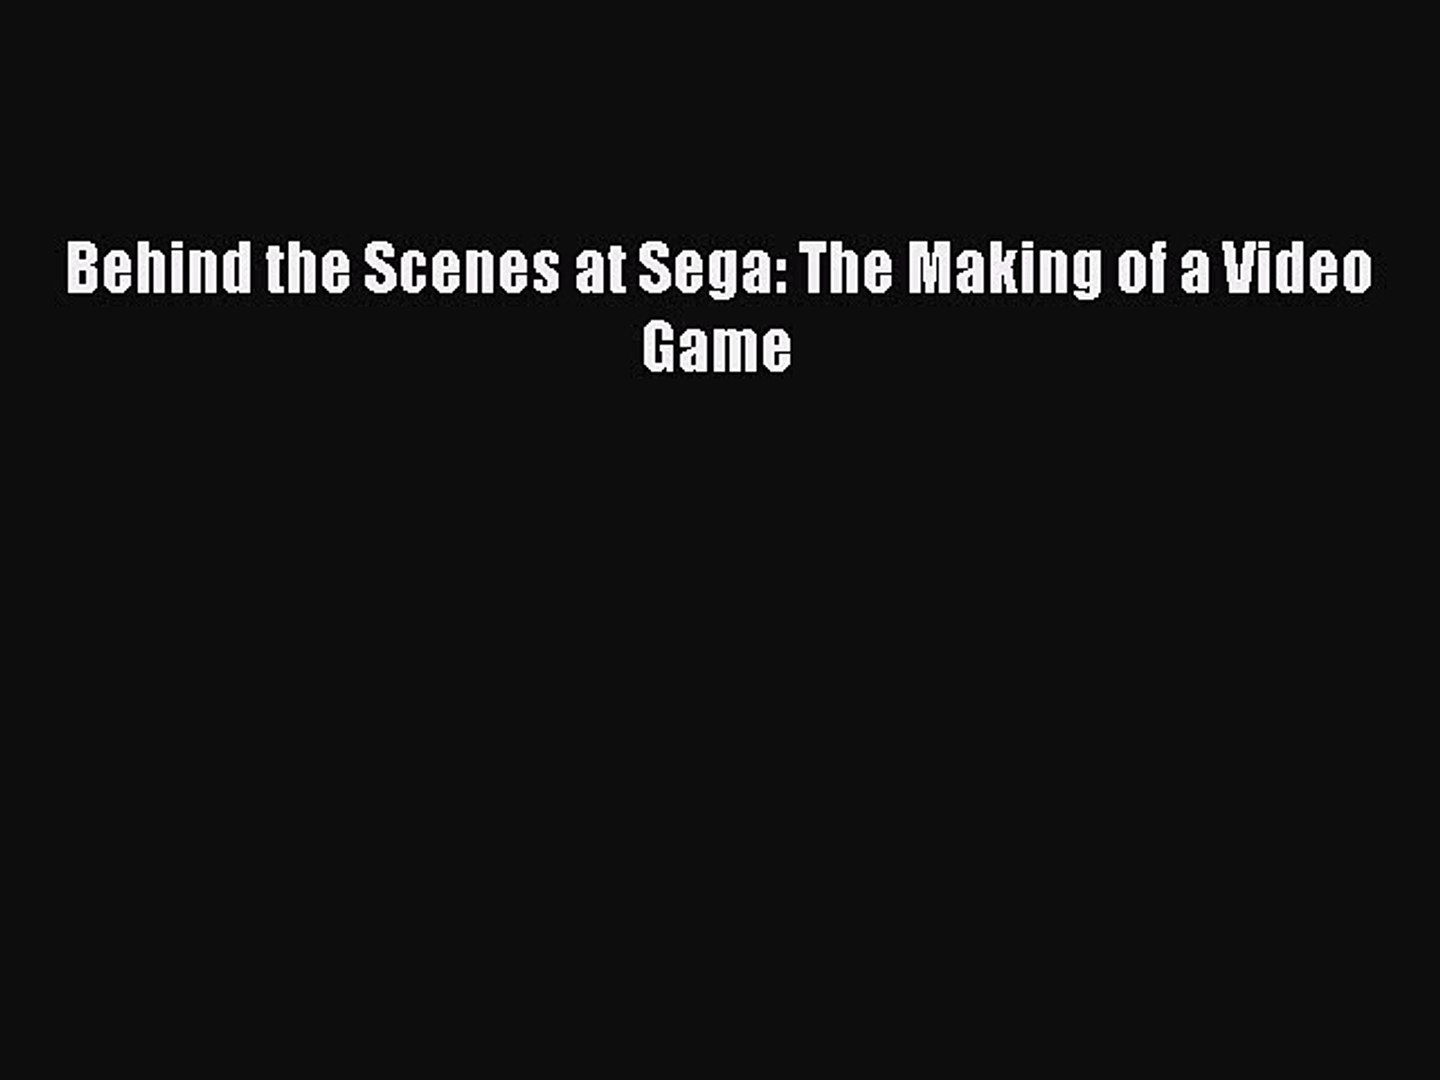 [Read book] Behind the Scenes at Sega: The Making of a Video Game [PDF] Full Ebook